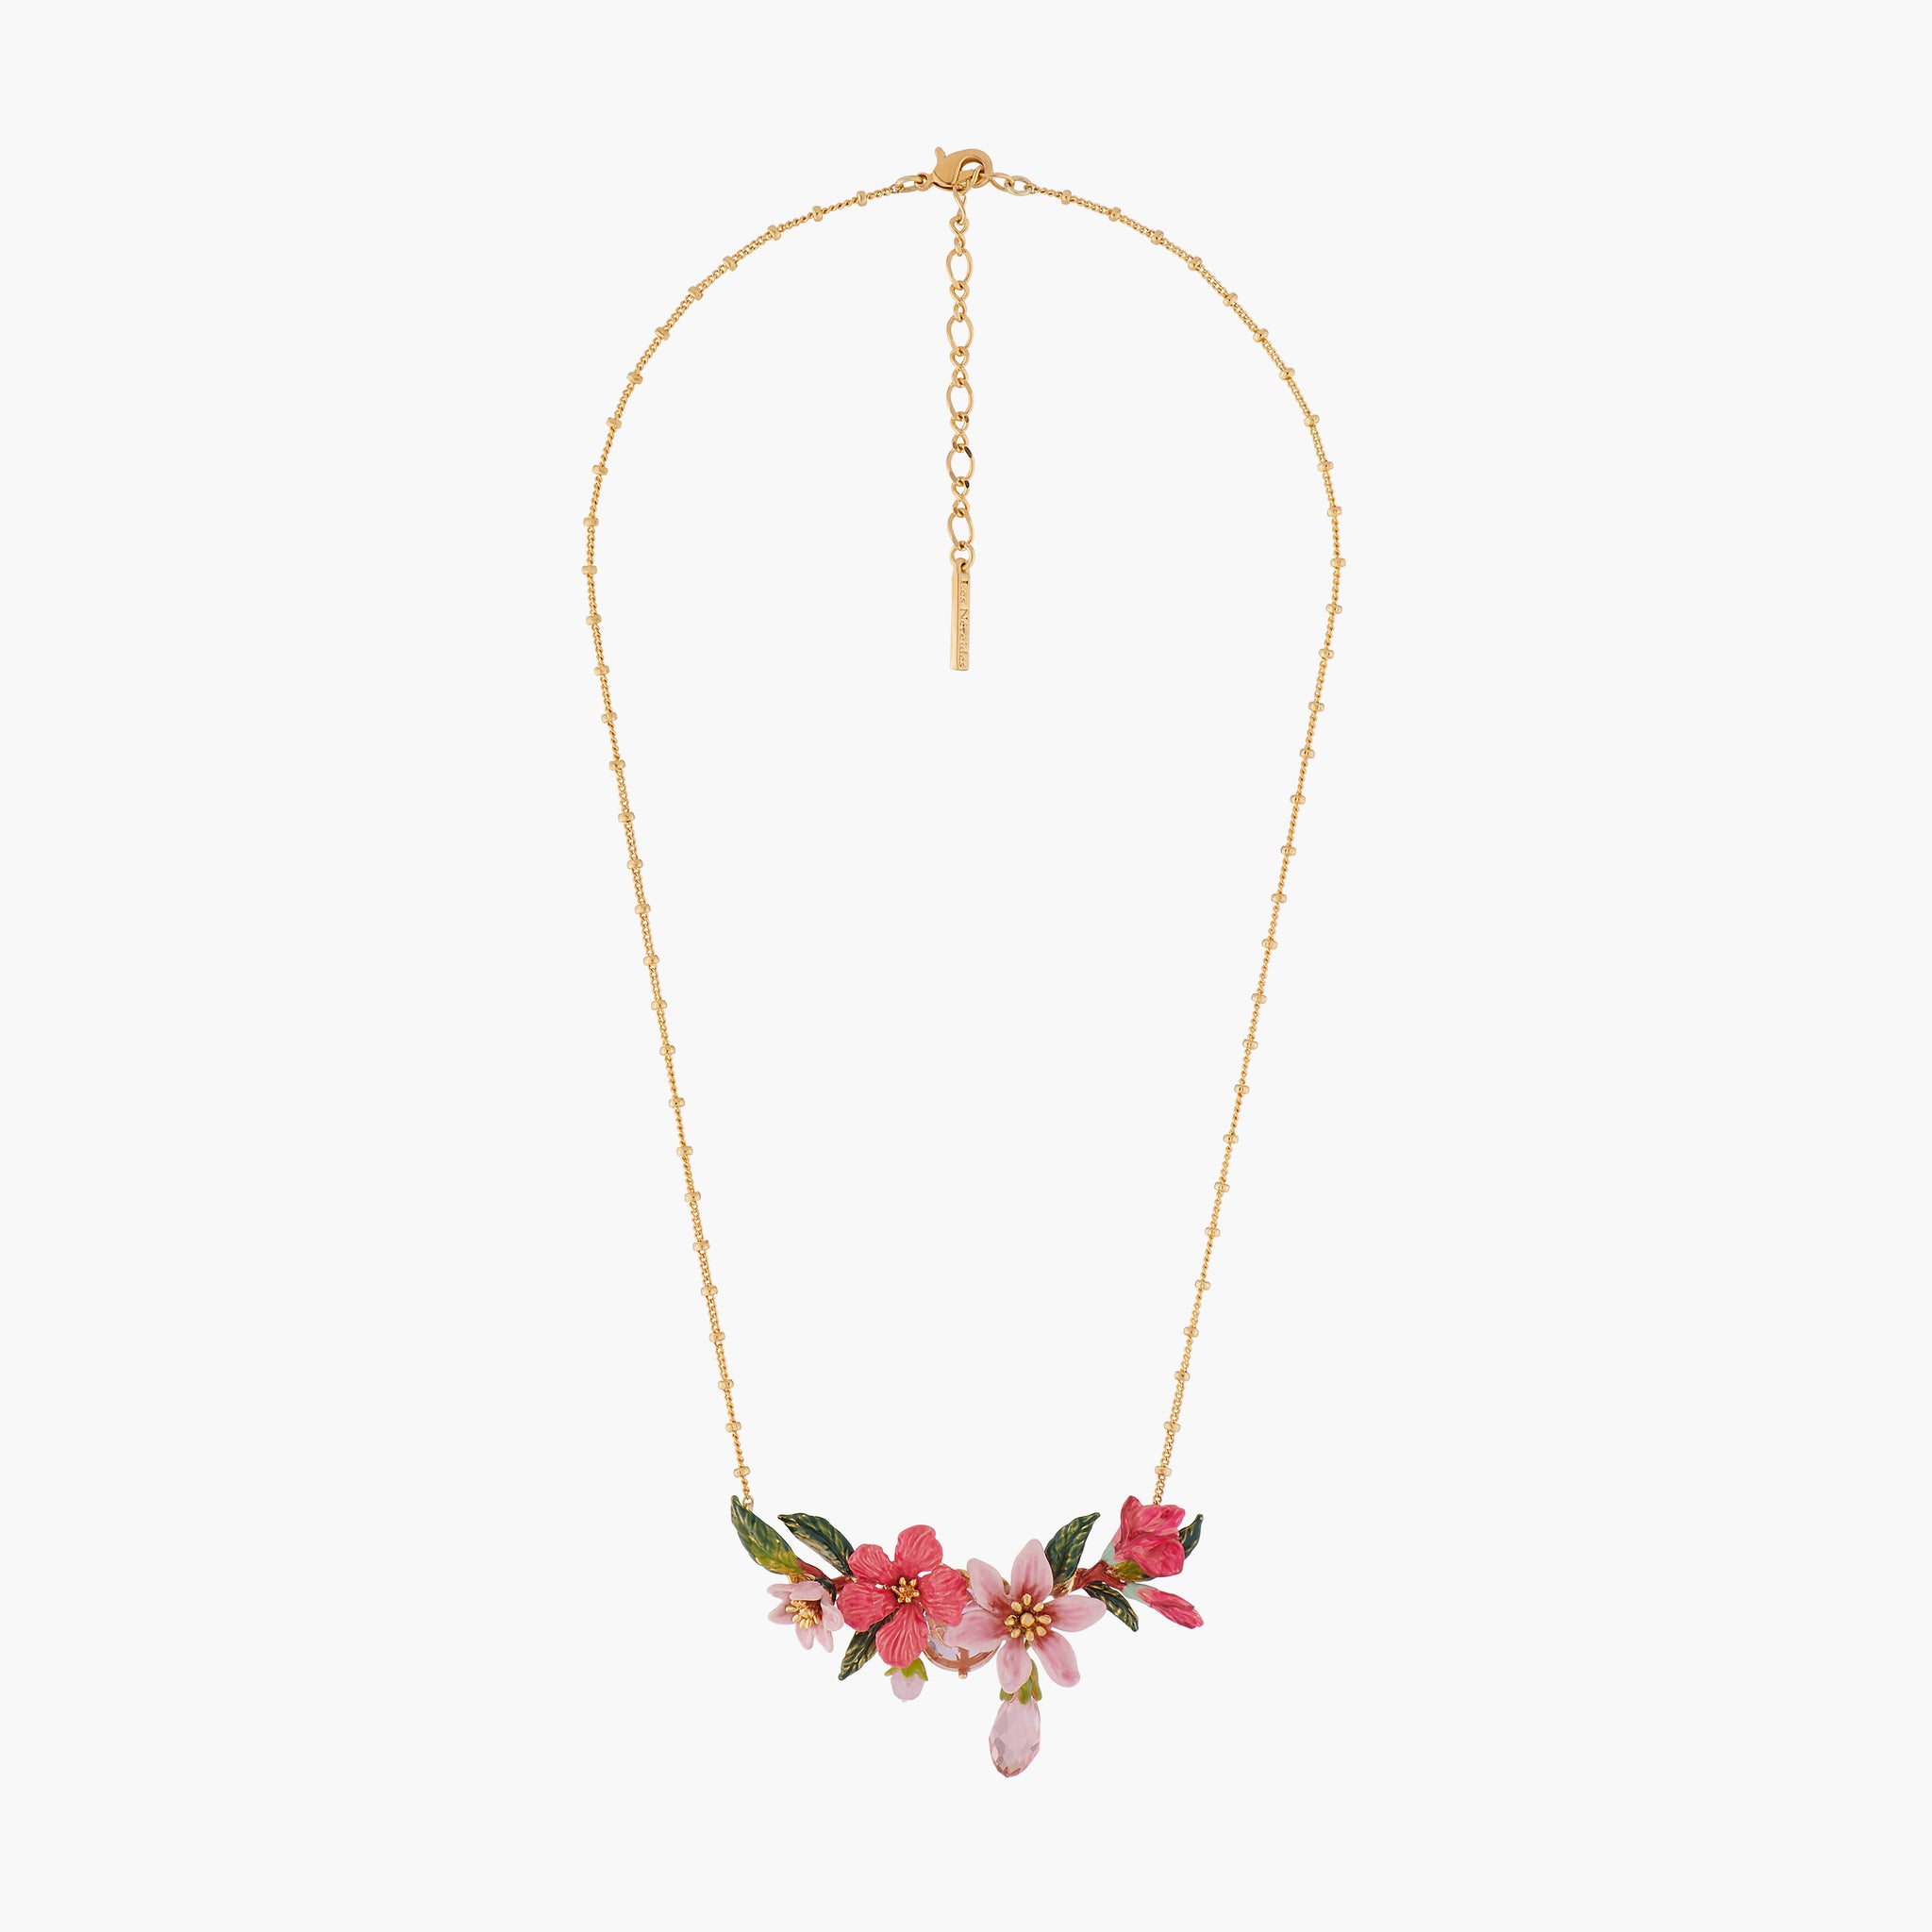 Oleander Flower and Buds Collar Necklace